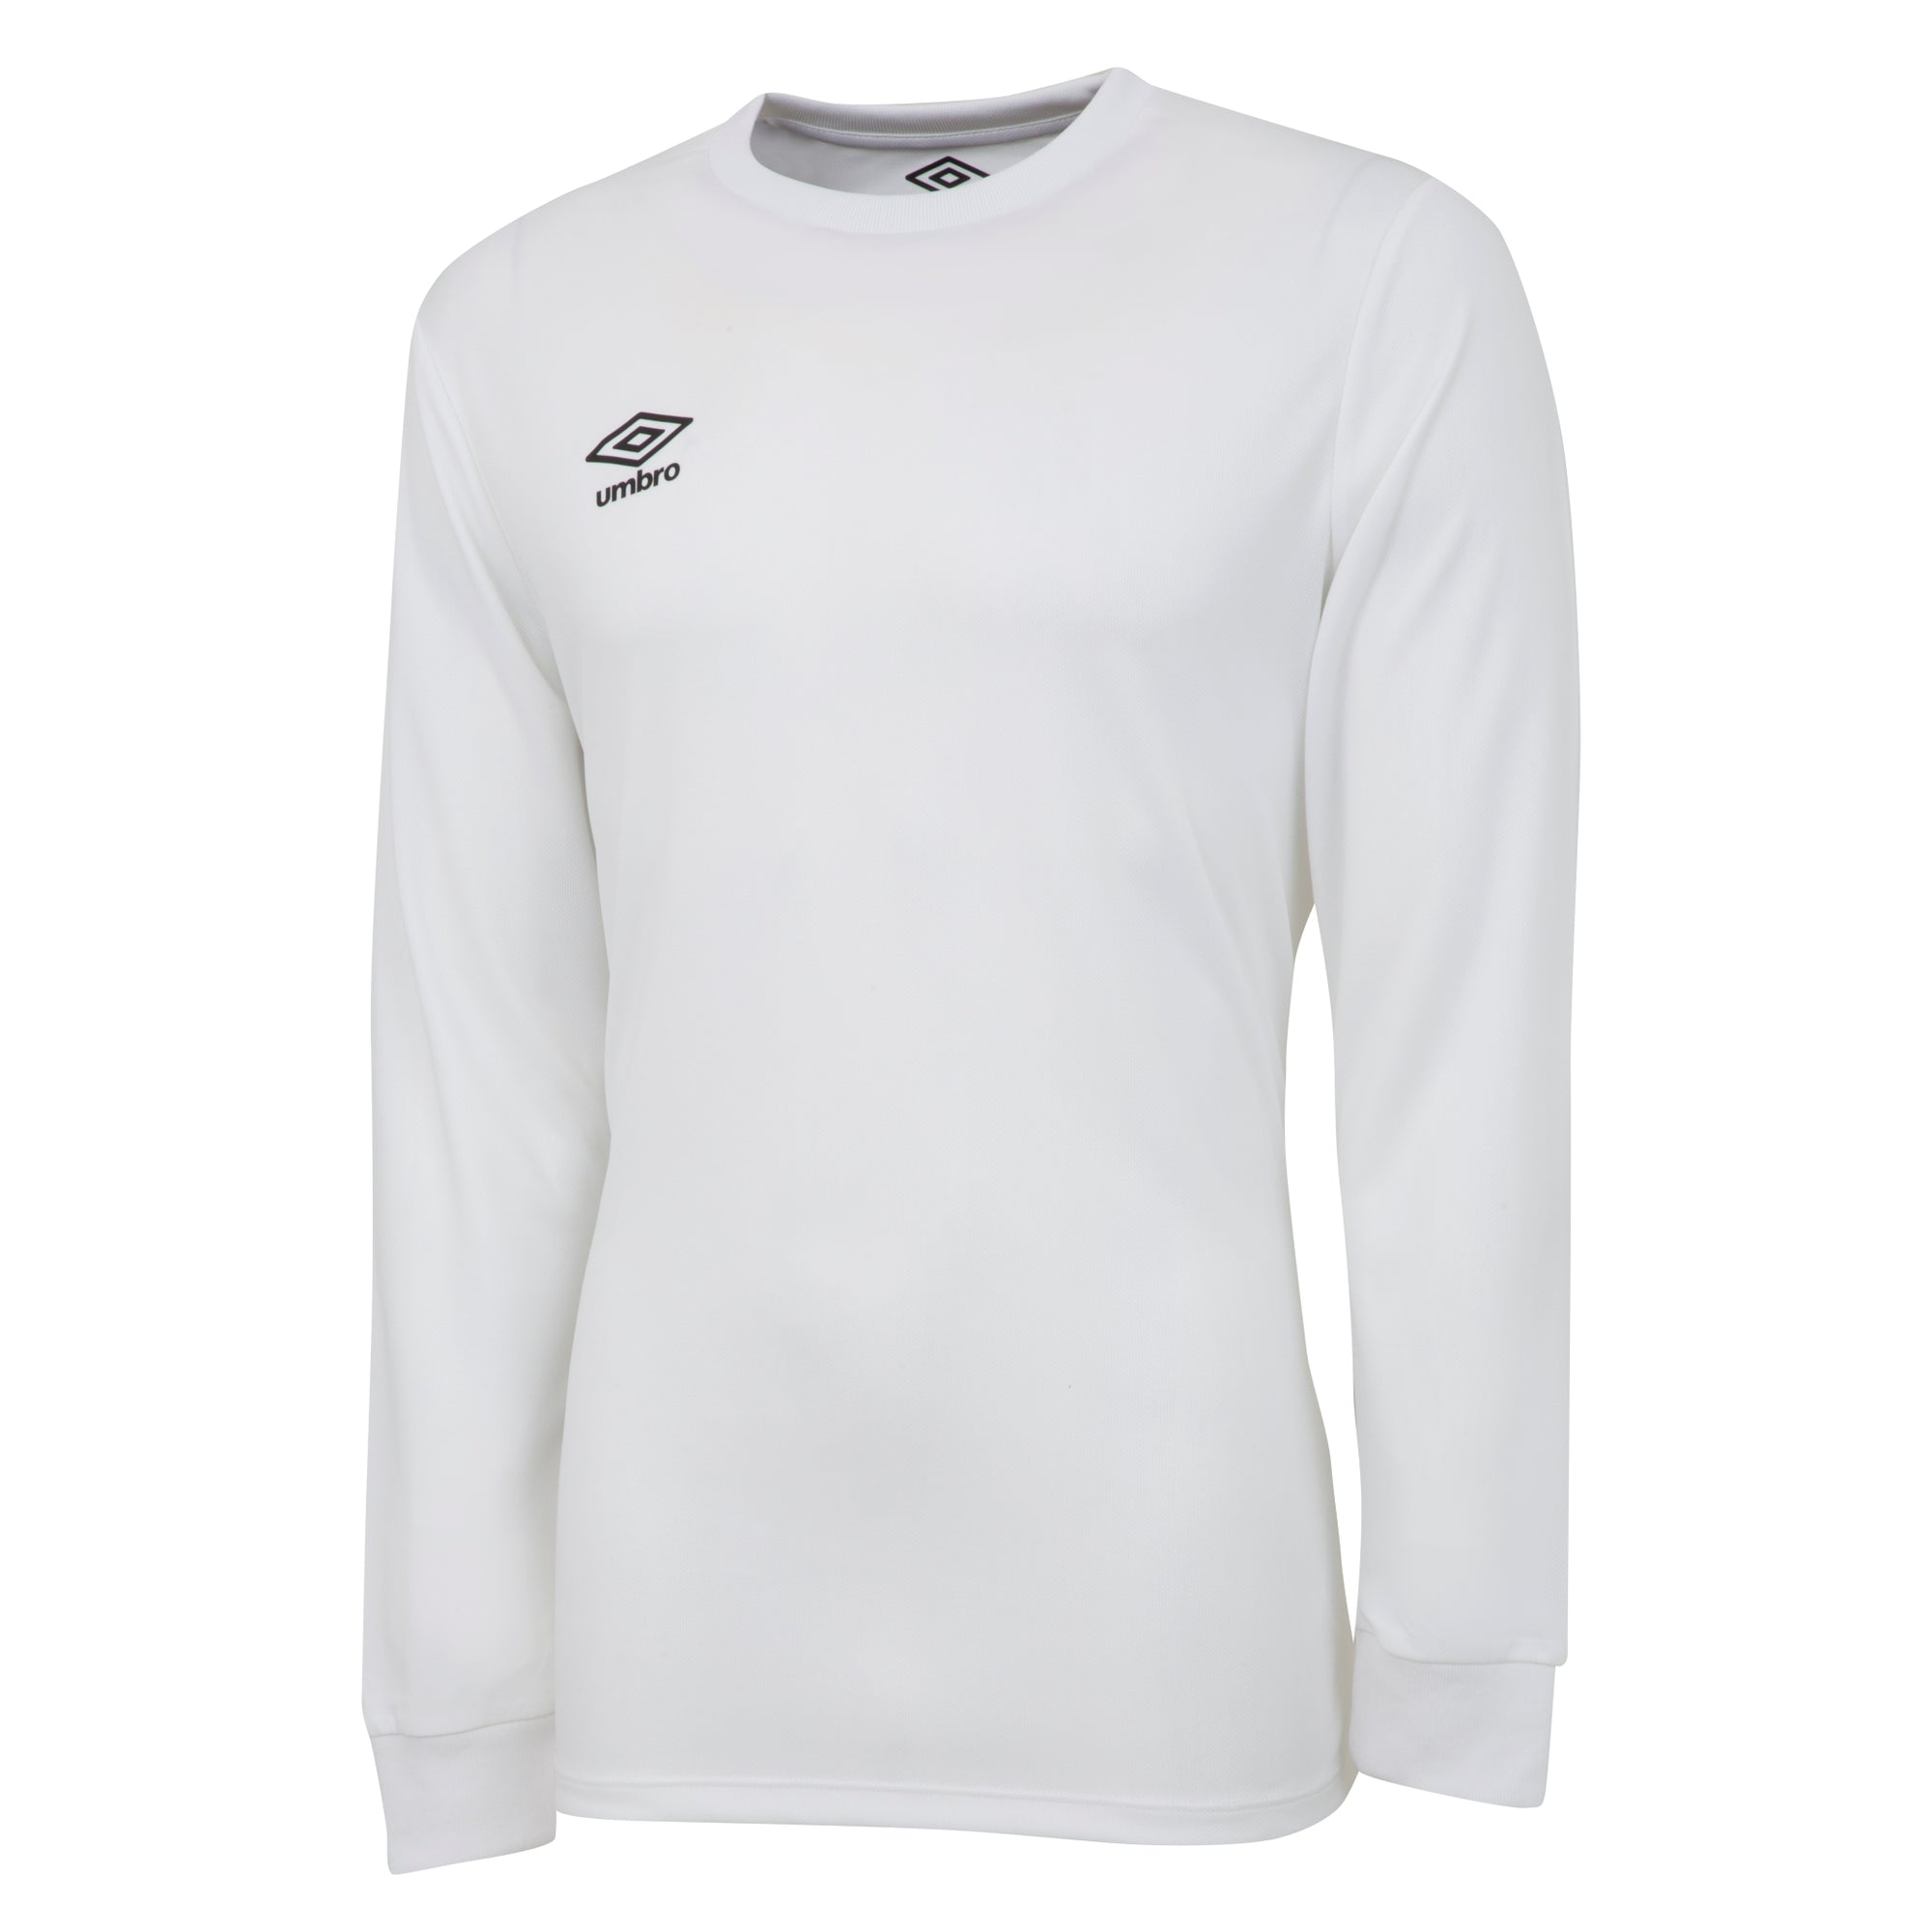 Umbro long sleeve club jersey in white with black printed Umbro logo